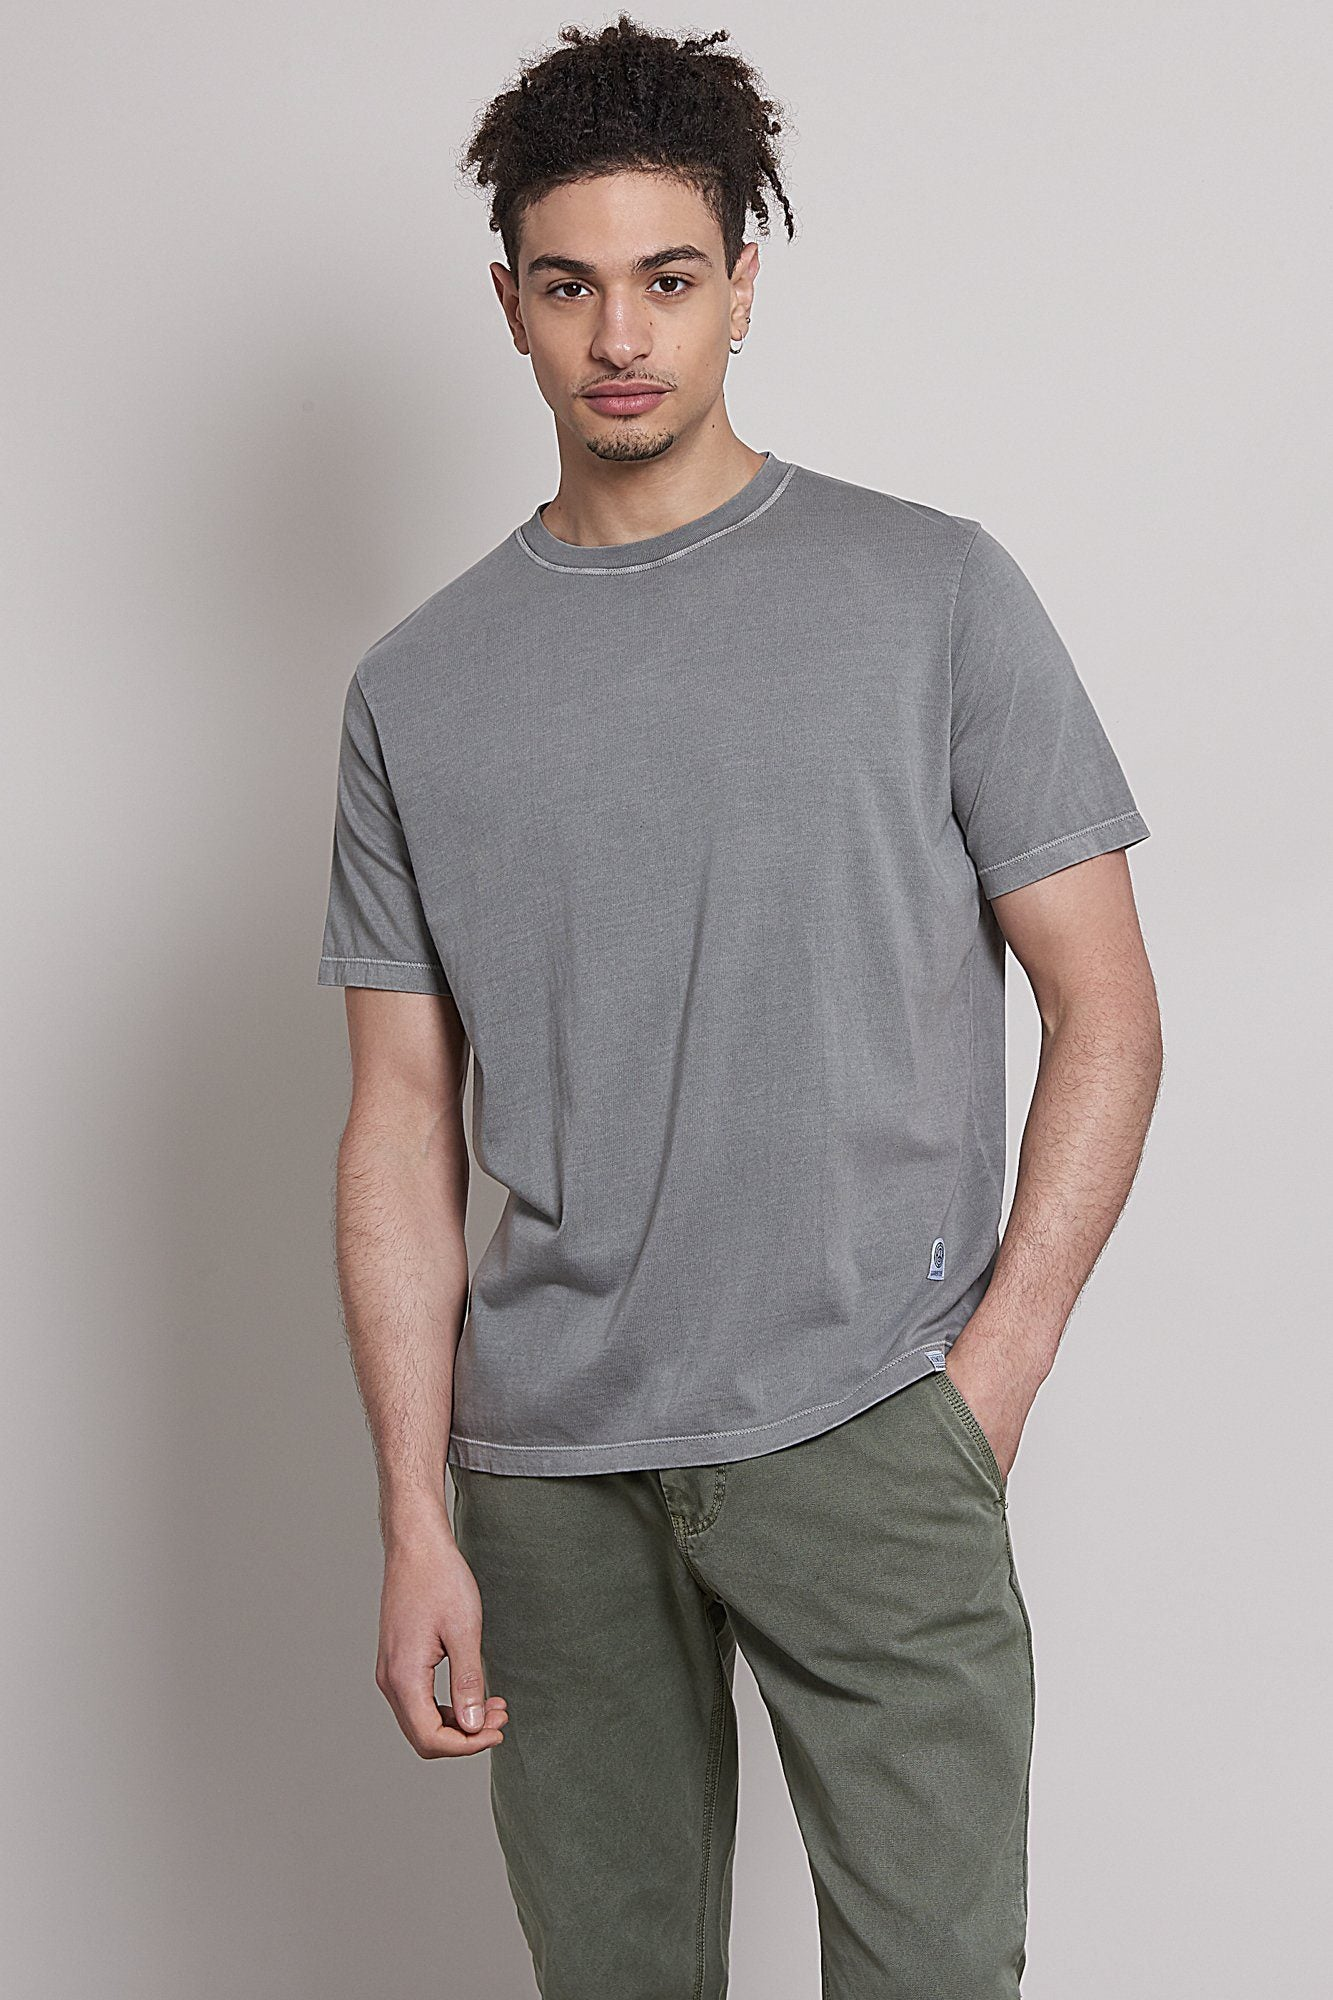 T-Shirt - KIN Organic Cotton T-Shirt Dove Grey